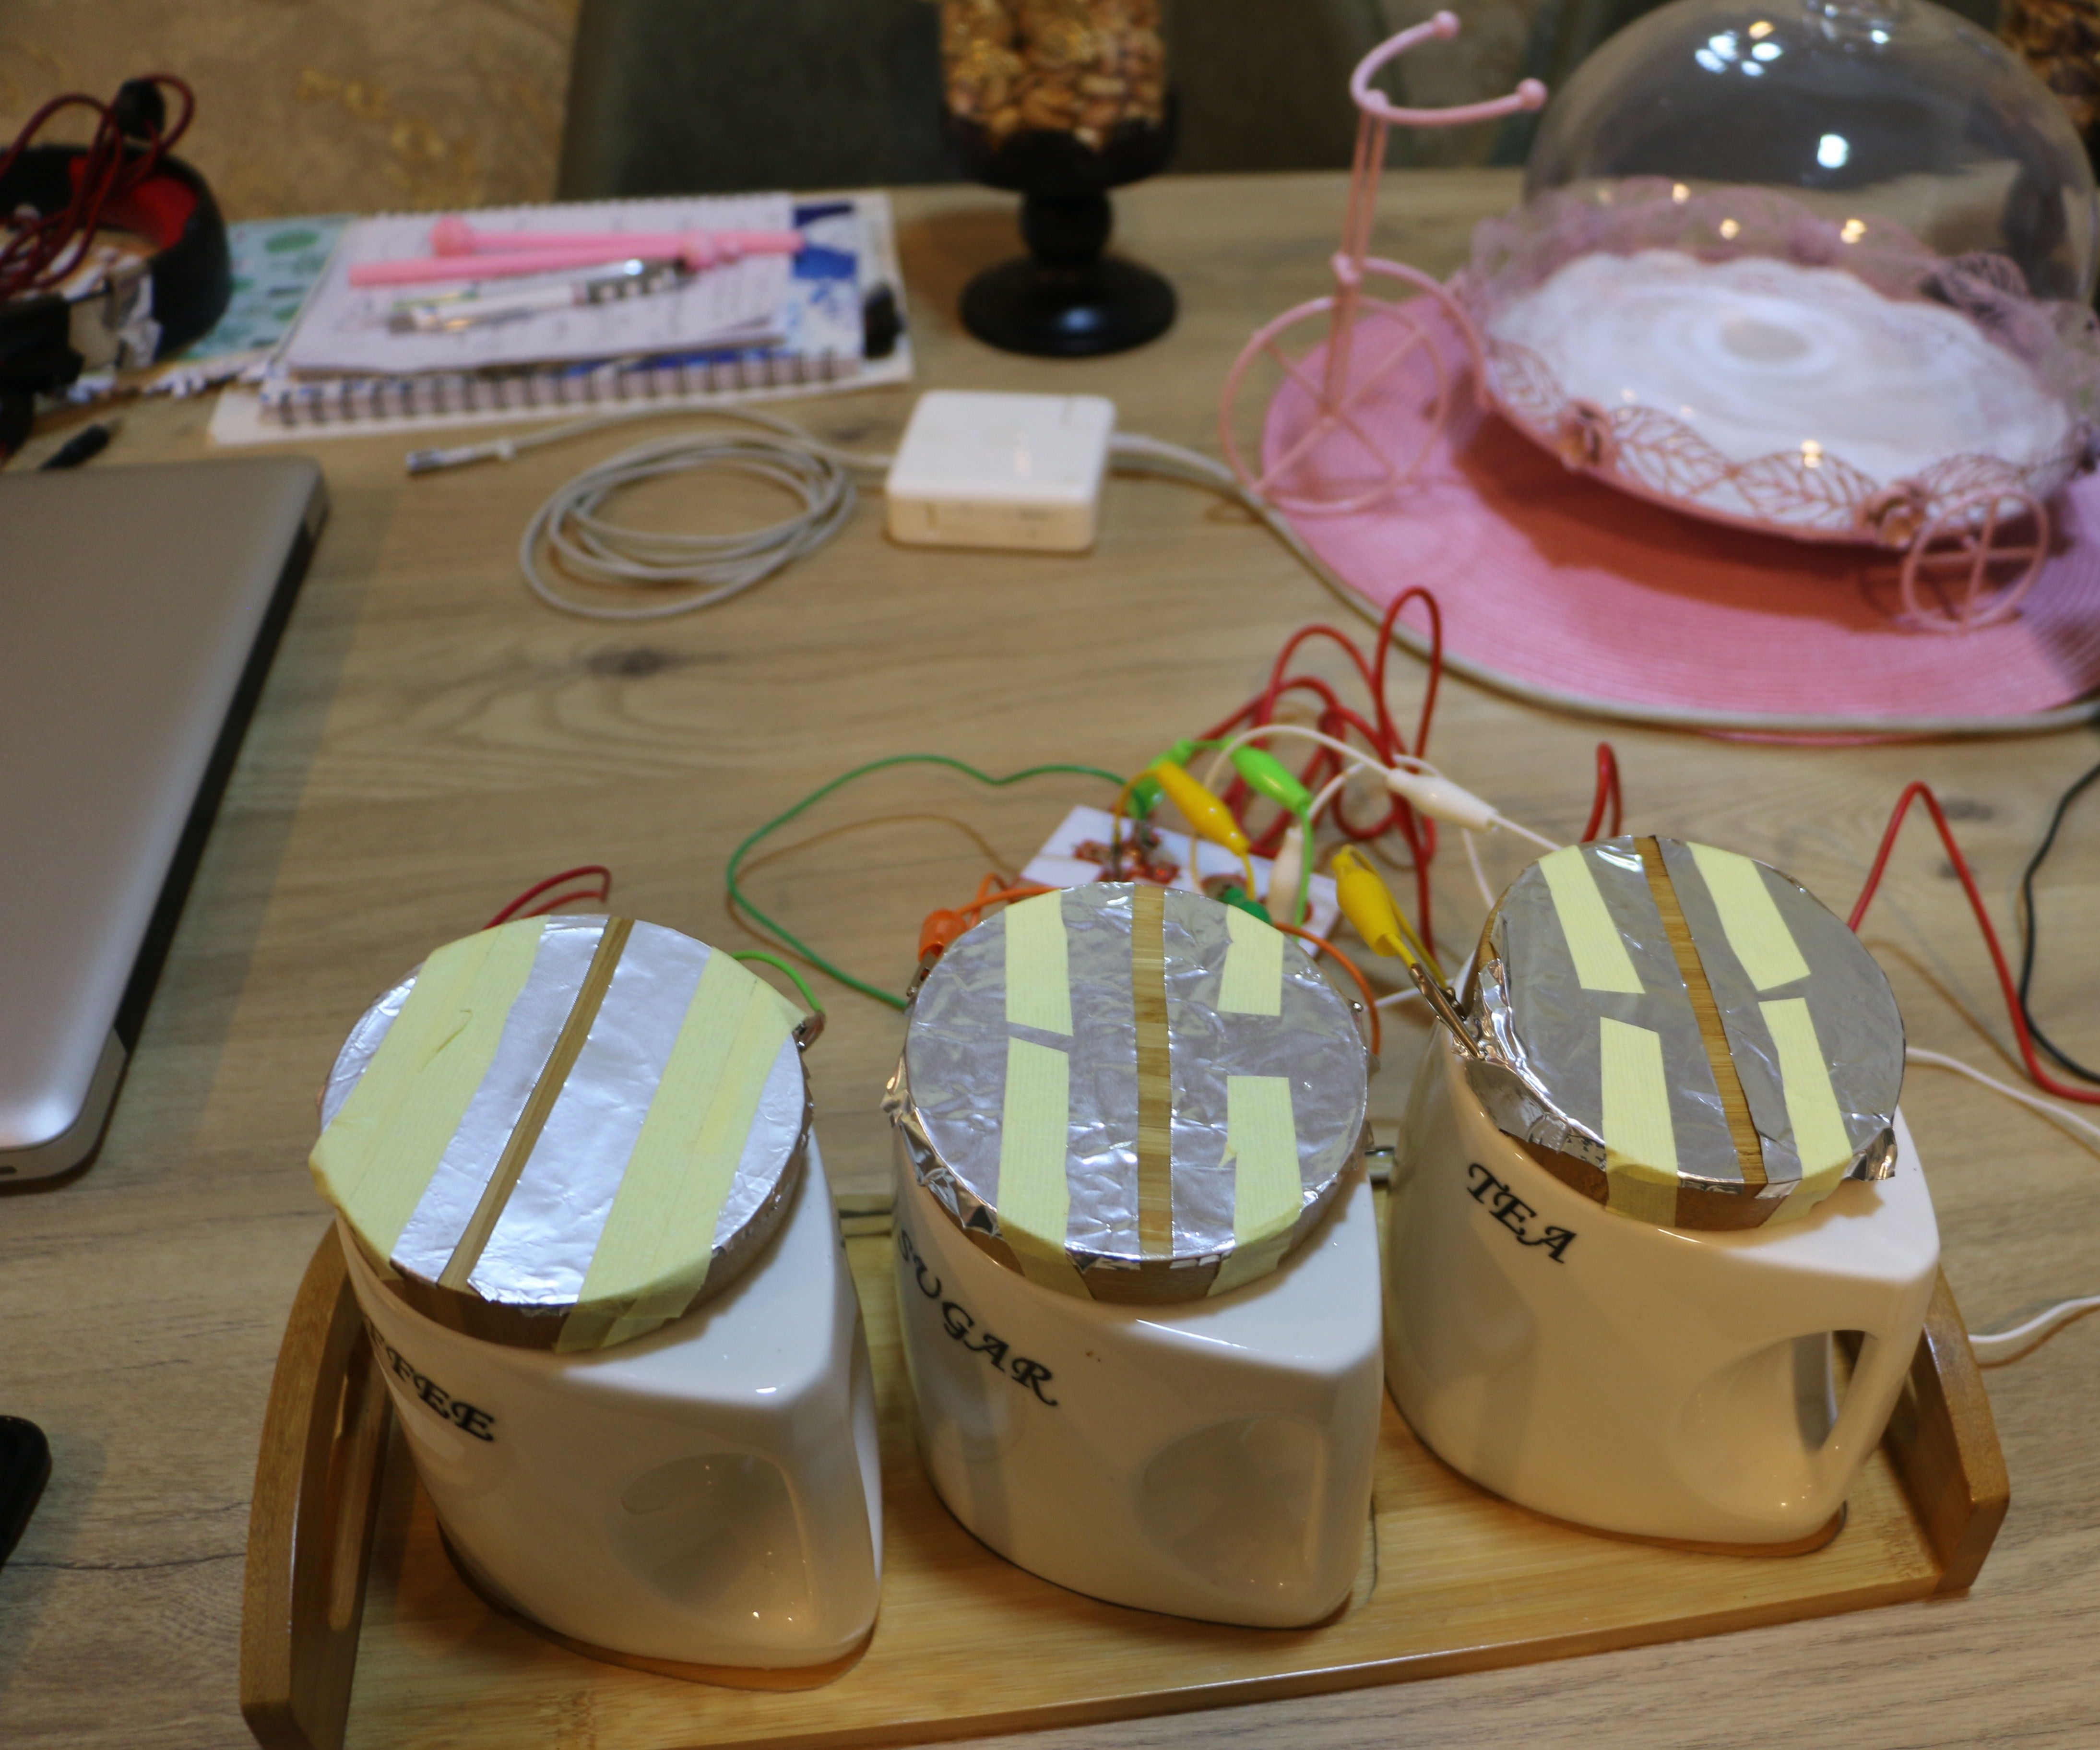 Make Blind Recognize Things by Touching Things Around Them Using MakeyMakey